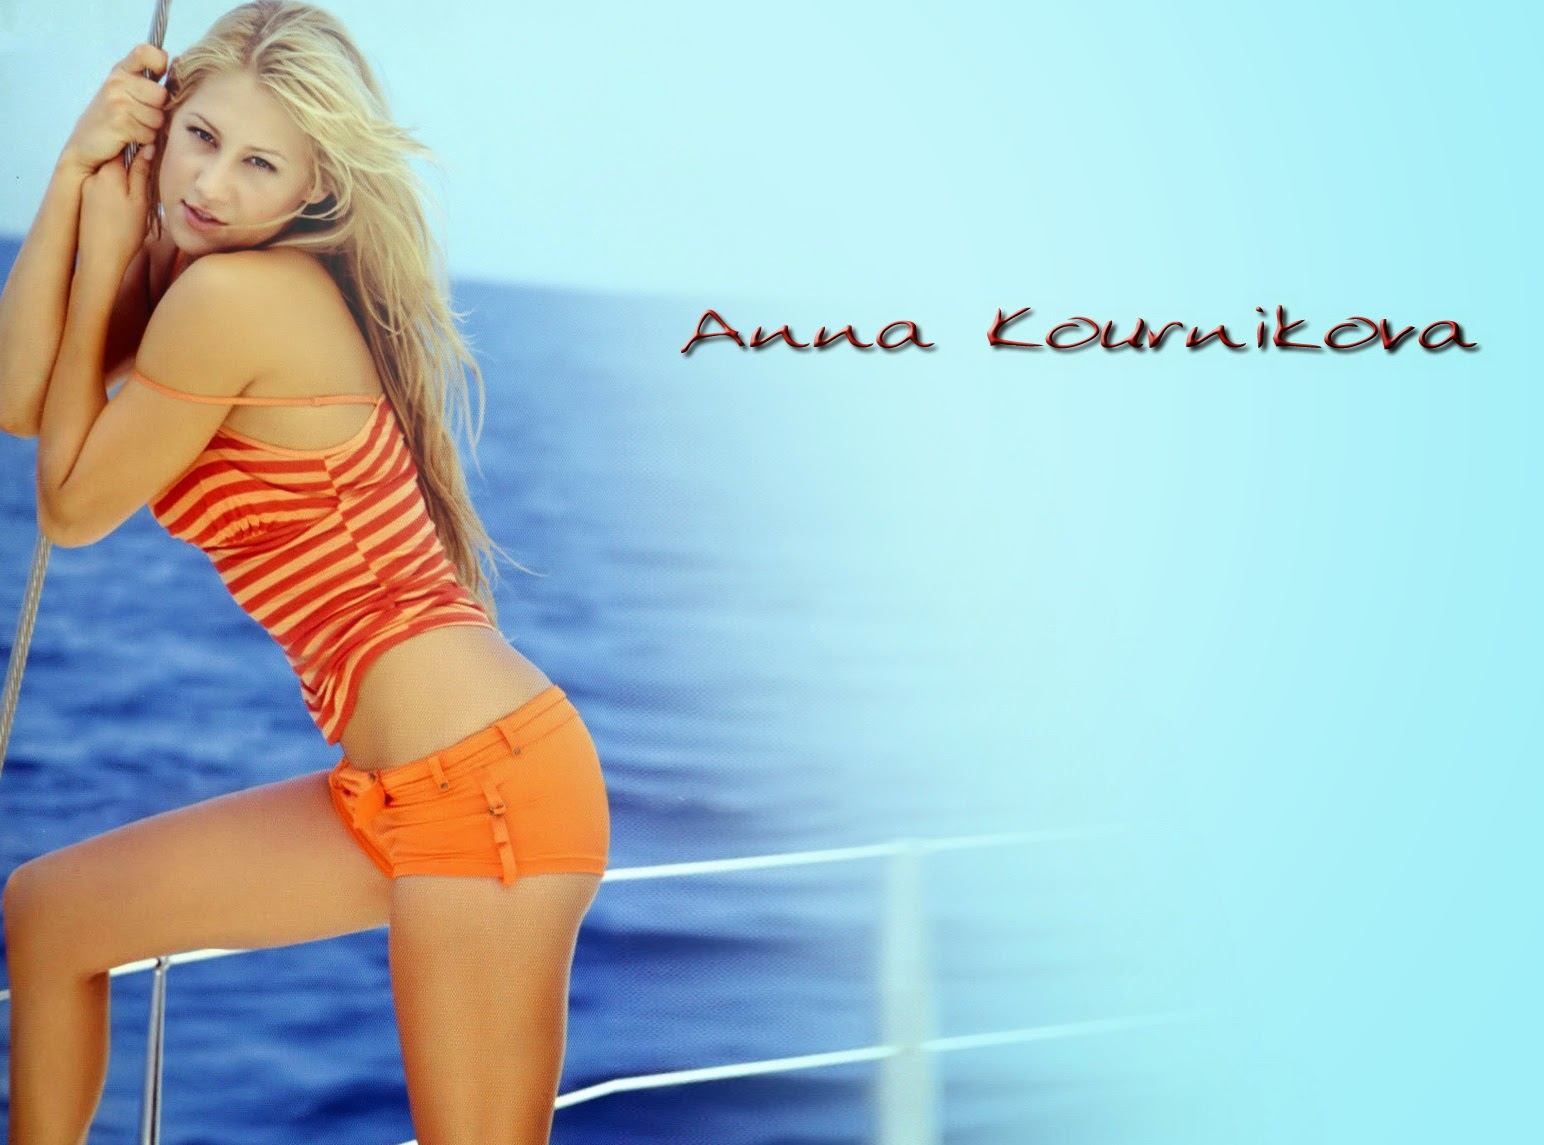 <b>Anna Kournikova</b> New HD <b>Wallpapers</b> 2014 | Lovely Tennis Stars